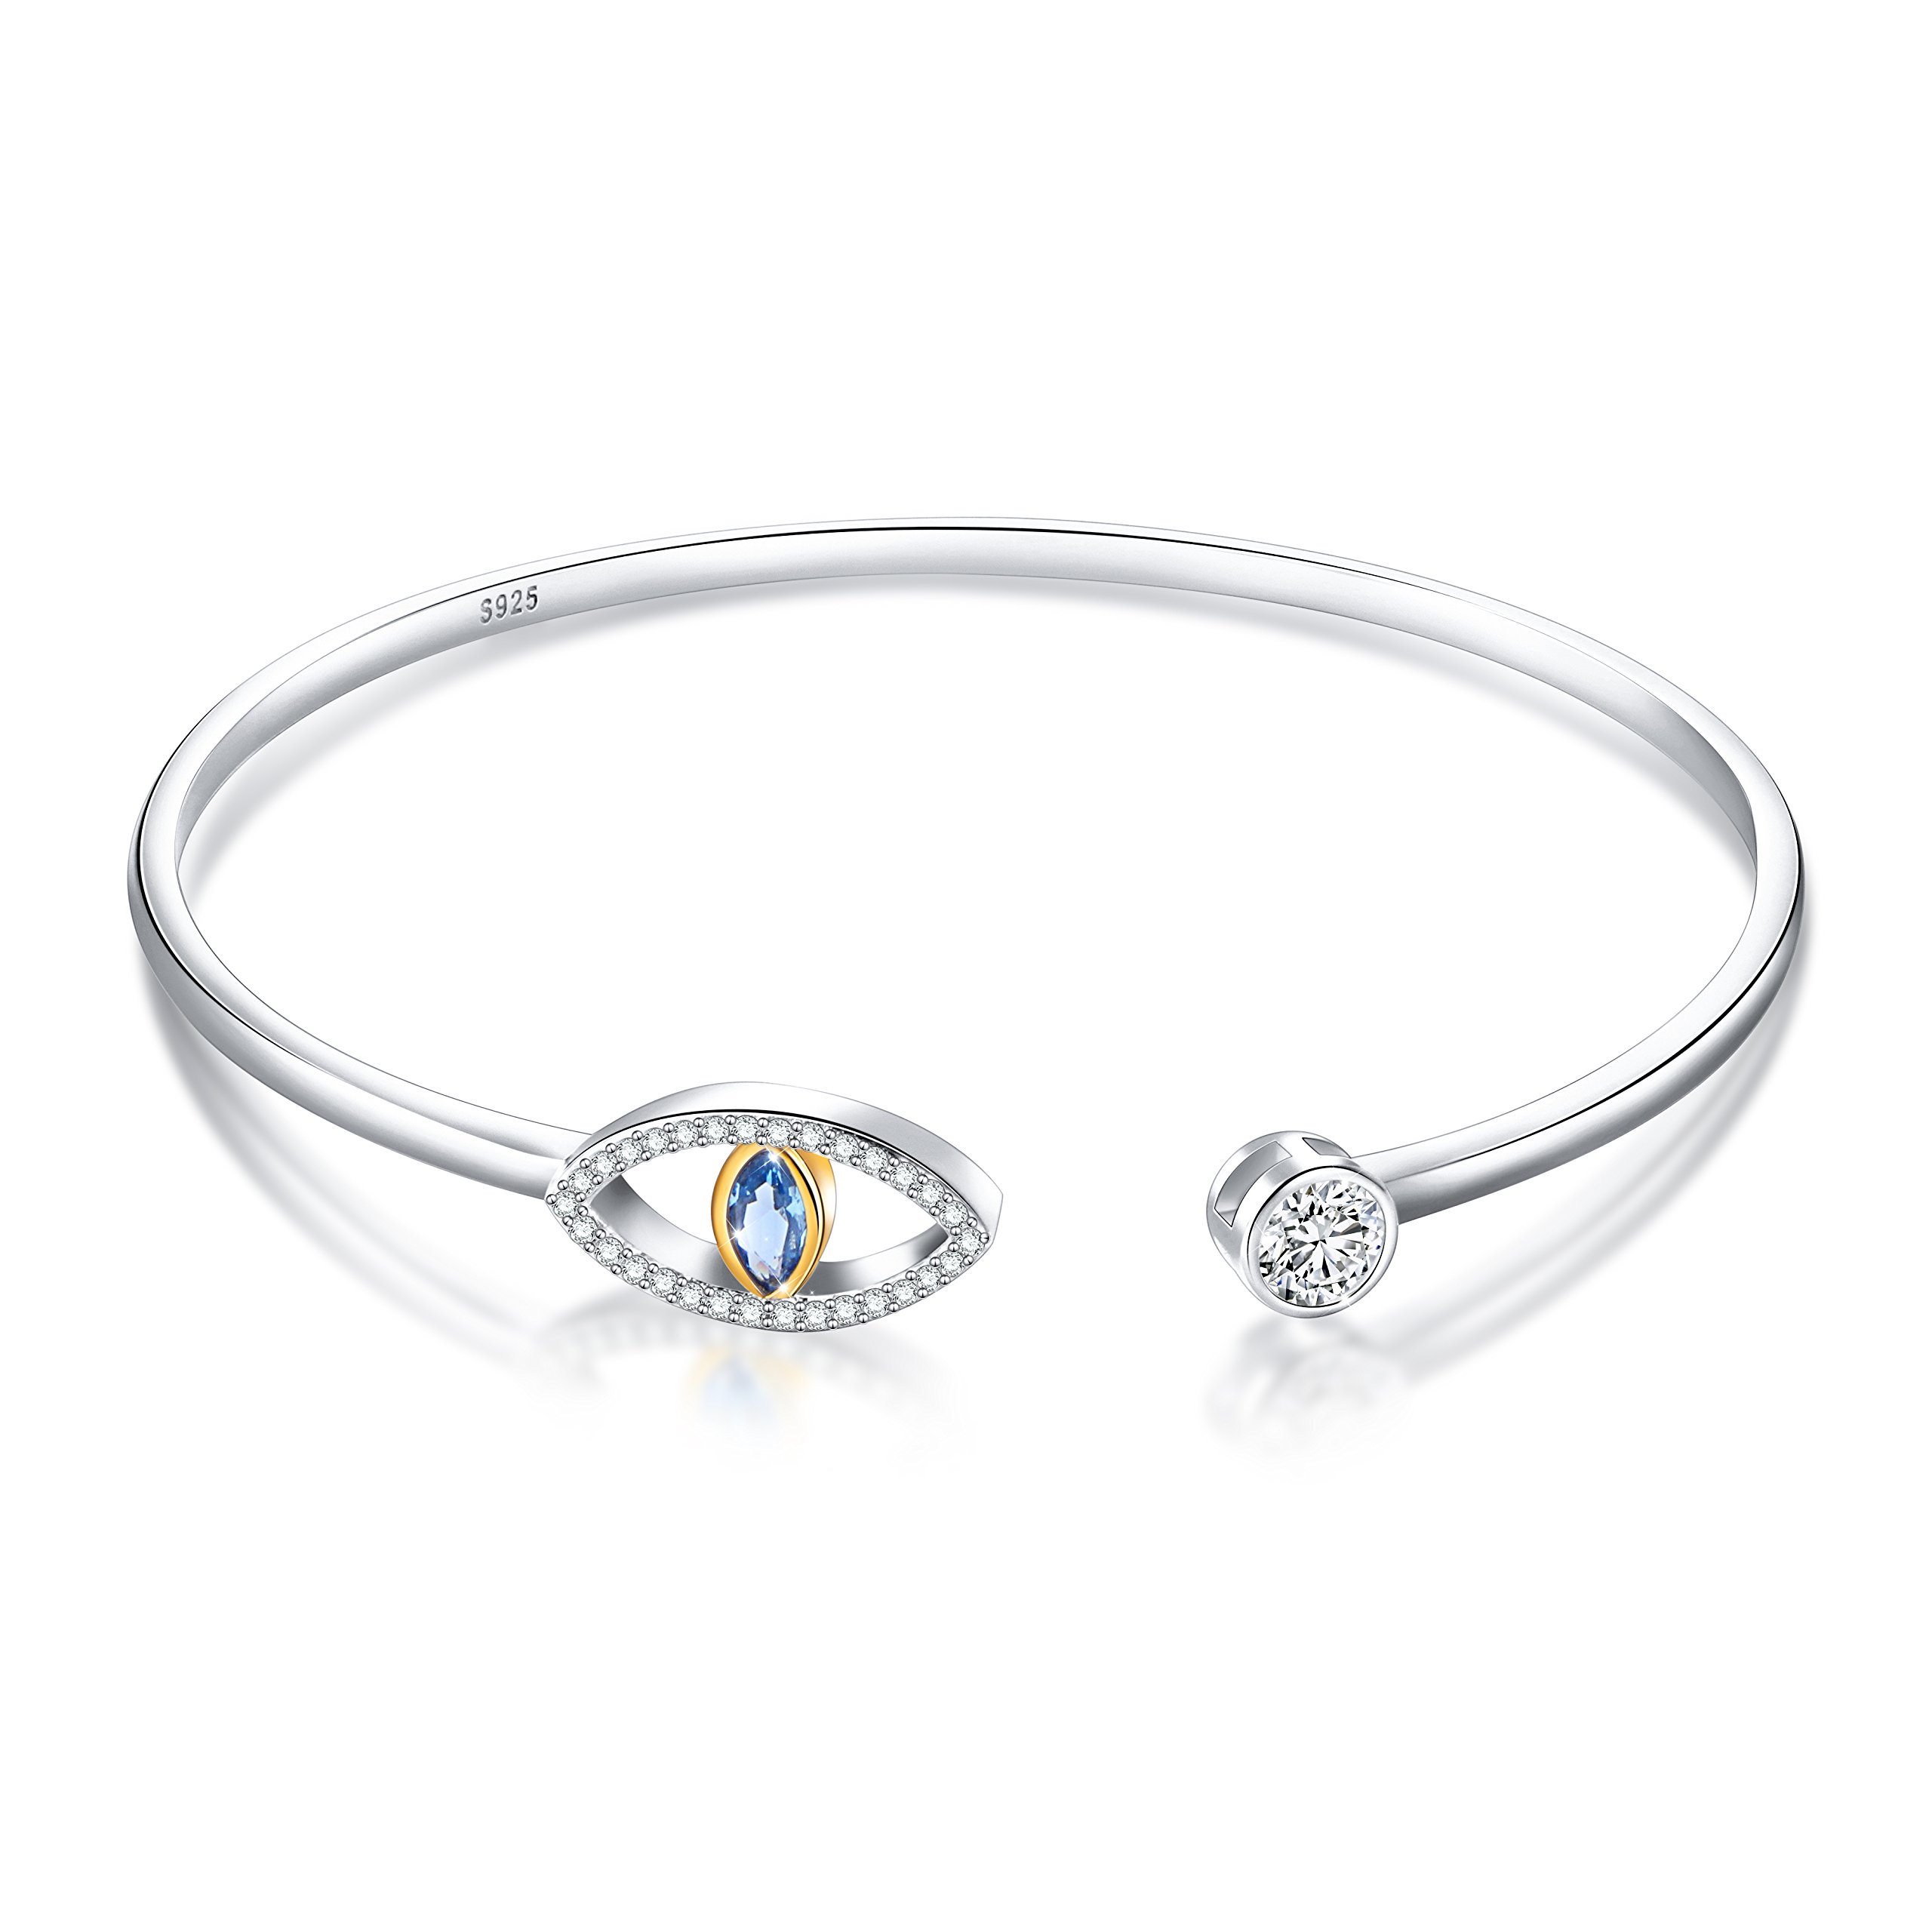 SILVER MOUNTAIN 925 Sterling Silver Pave Evil Eye Double End Cuff Bangle Bracelet for Women